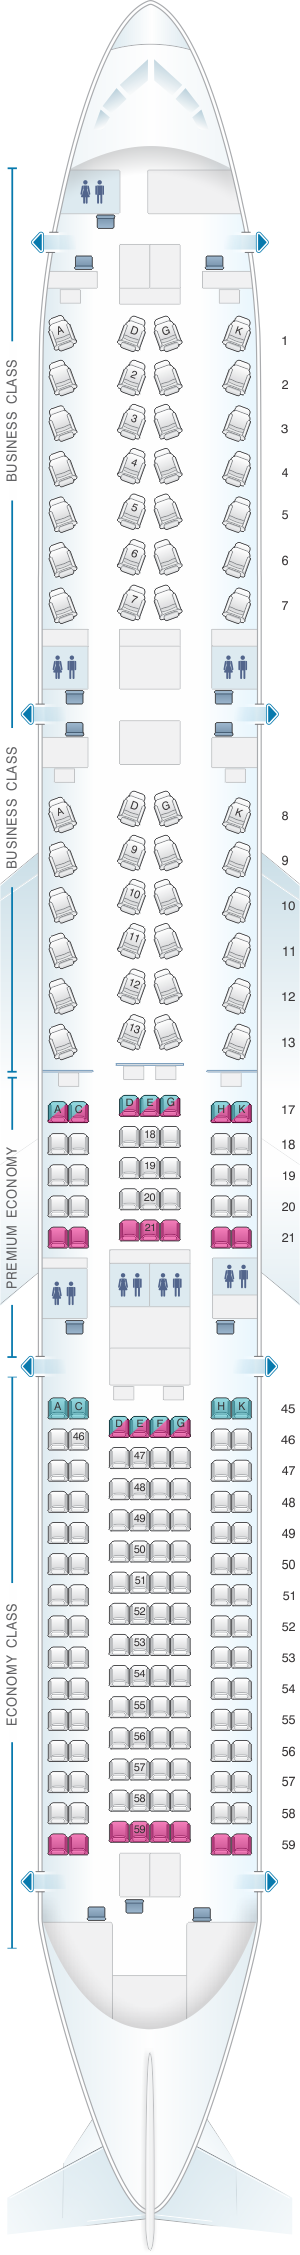 Seat map for Japan Airlines (JAL) Boeing B787-9 E91